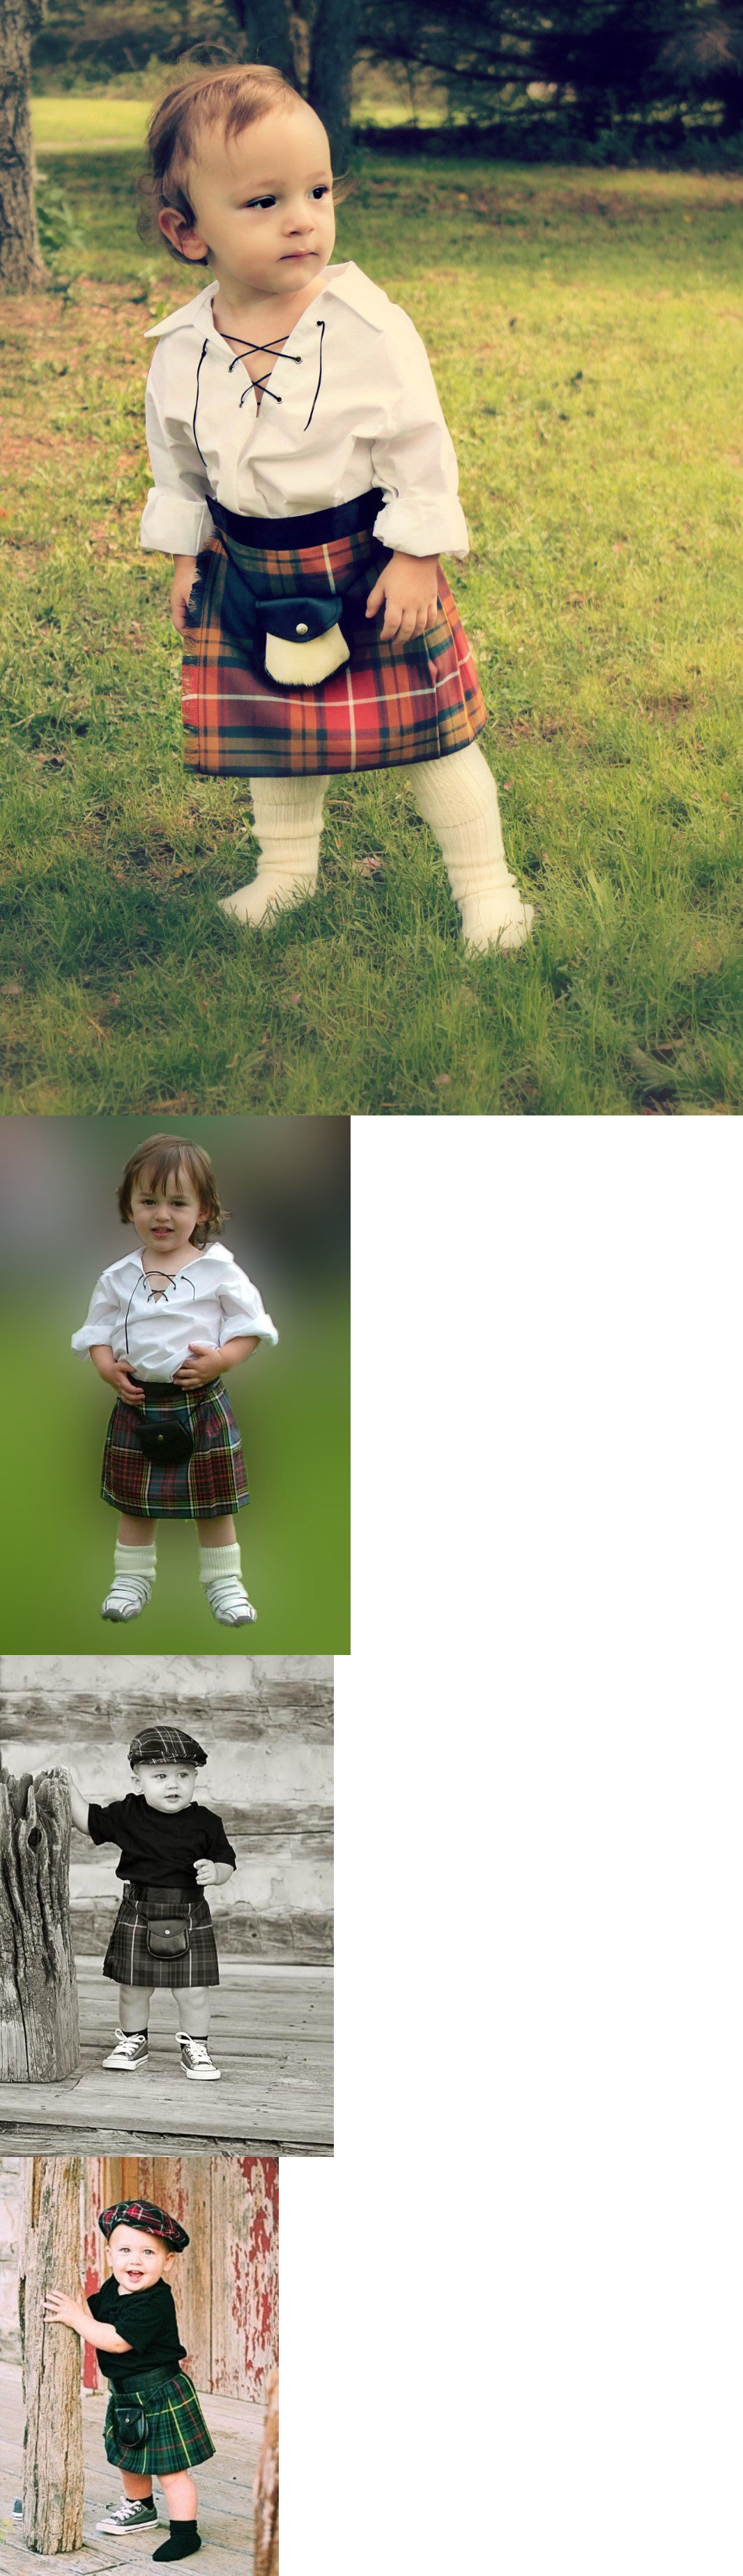 Other Baby and Toddler Clothing 1070: Scottish Baby Kilt 12-24 Month 40 Tartans Plaids Christmas? Shower? Christening -> BUY IT NOW ONLY: $35.99 on eBay!